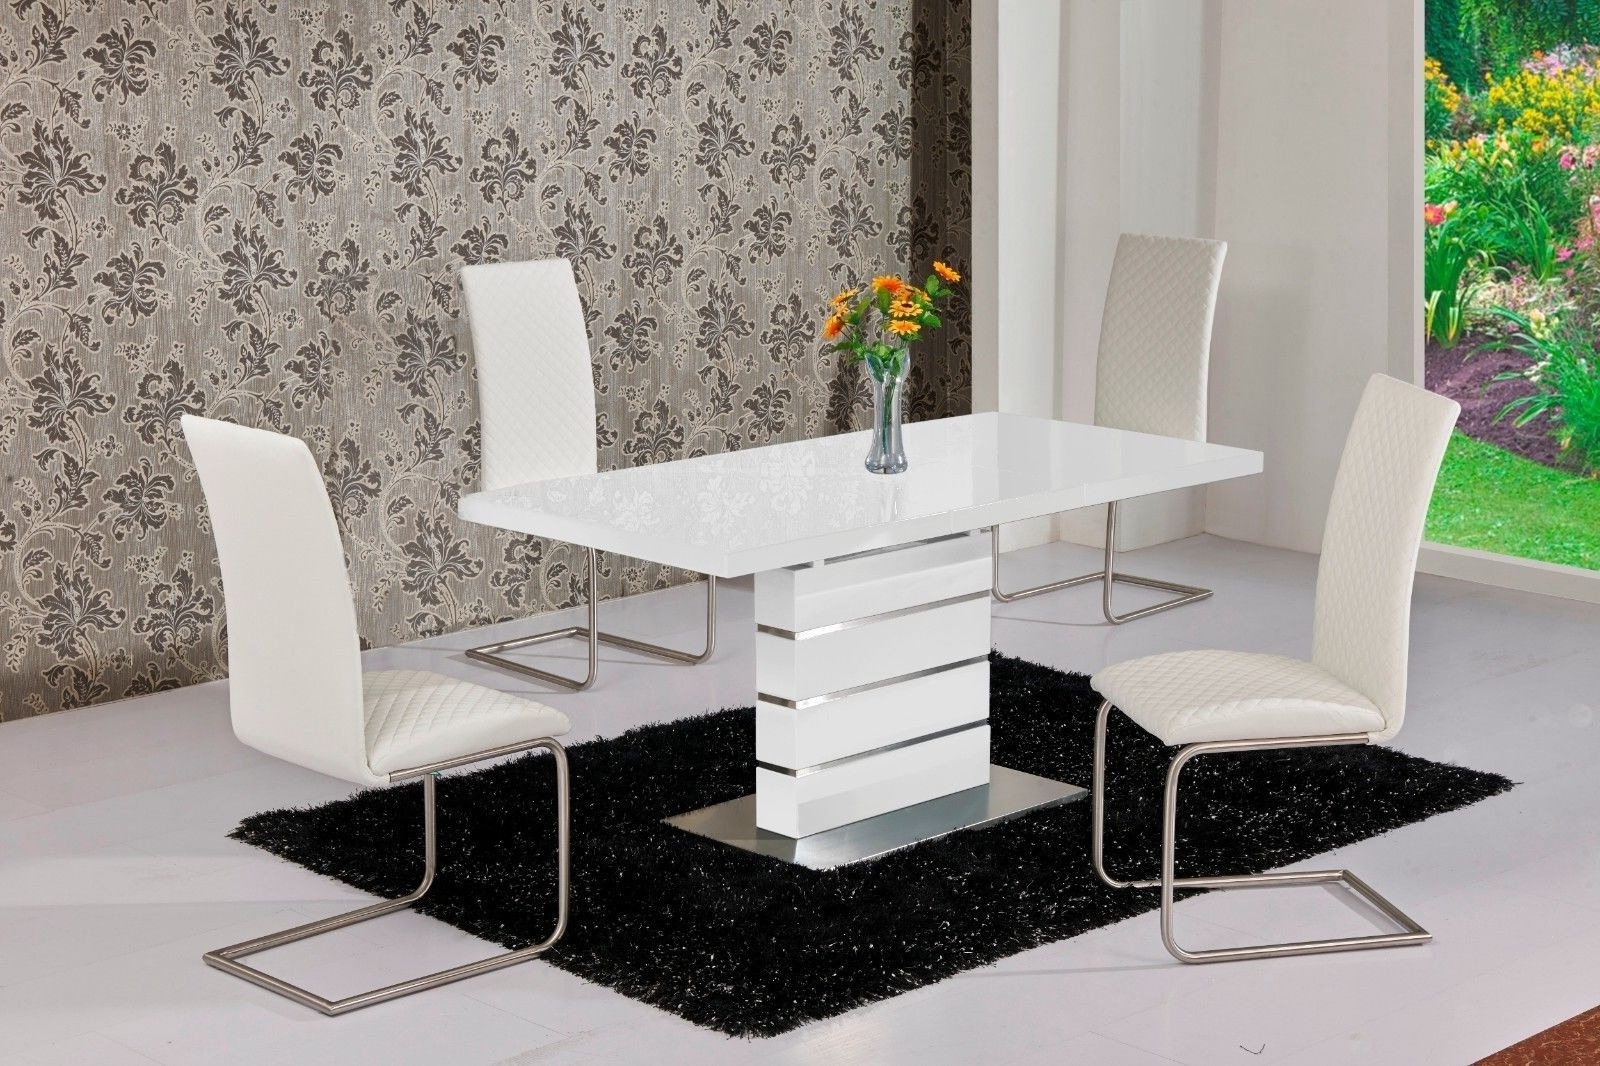 Mace High Gloss Extending 120 160 Dining Table & Chair Set – White Regarding Fashionable Extendable Dining Tables With 6 Chairs (View 9 of 25)